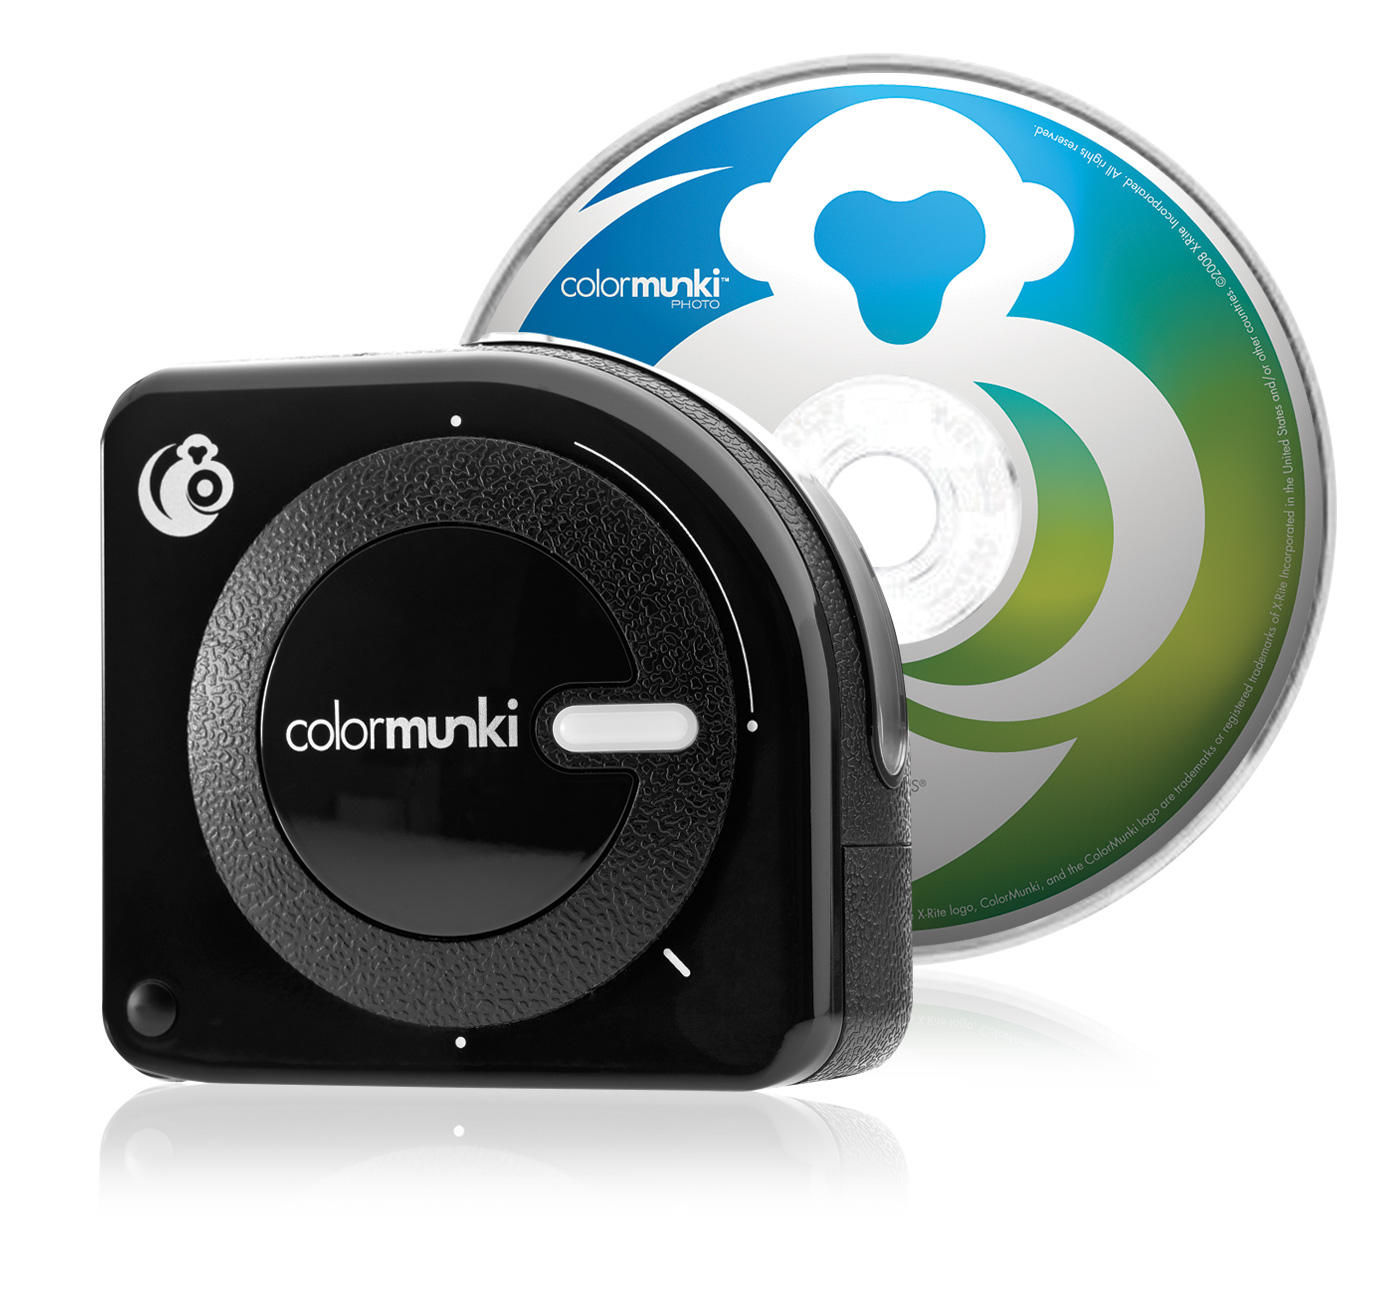 Colormunki create product support.